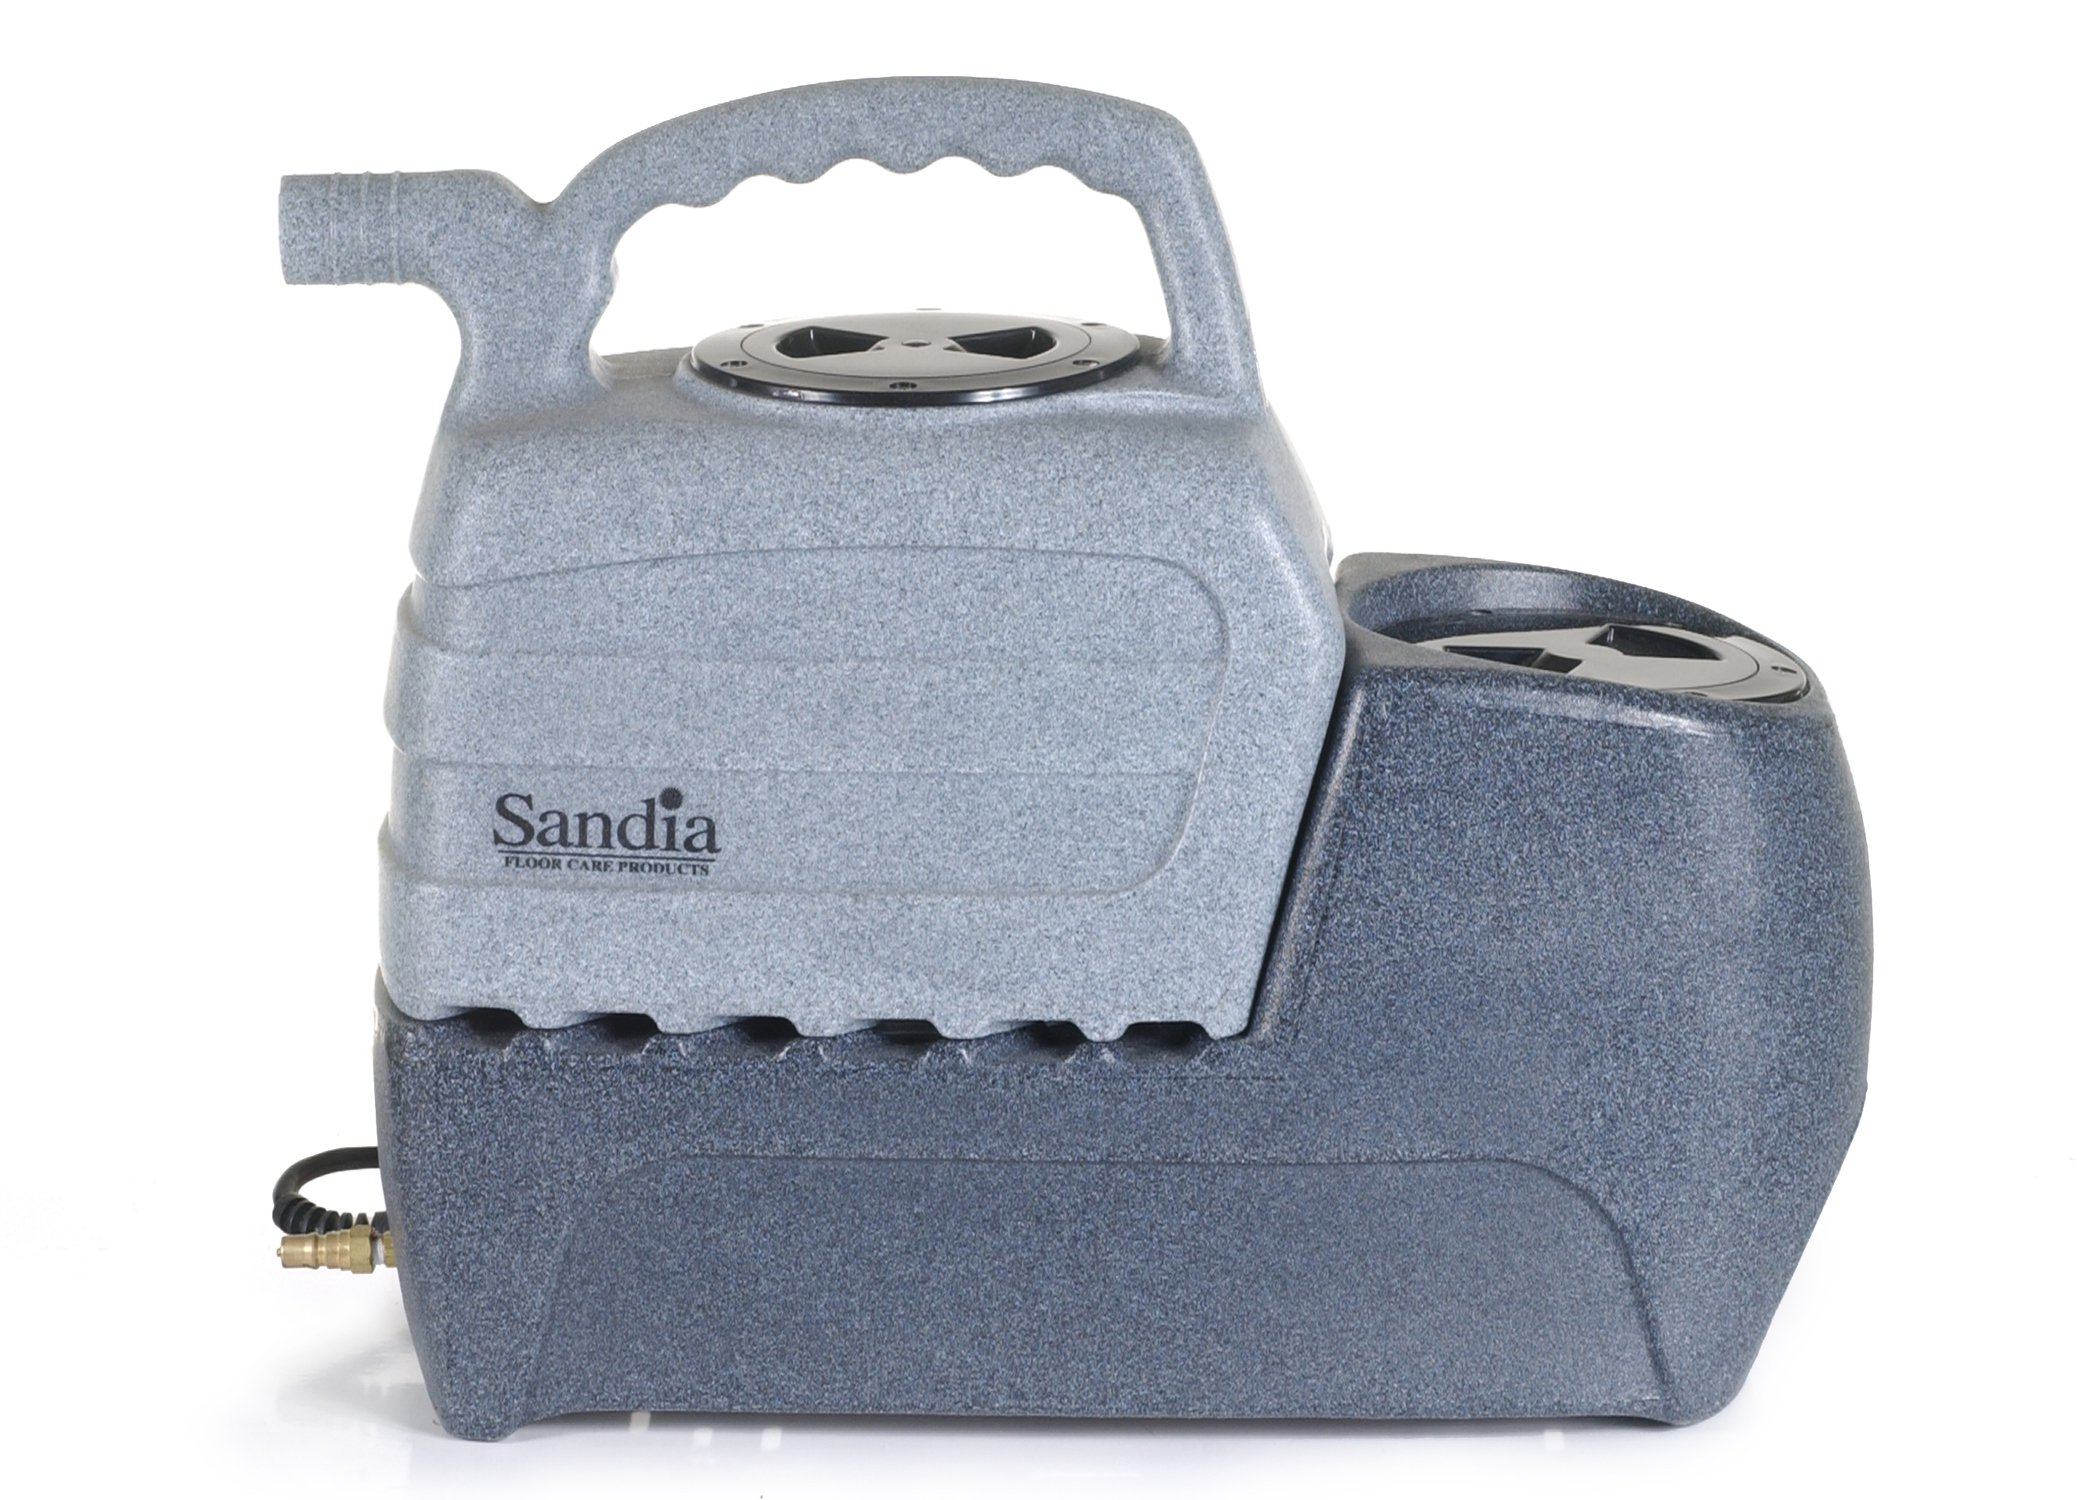 Sandia 50-2000 Spot-Xtract Commercial Extractor with Clear Viewith Plastic Hand Tool, 2 Gallon Capacity by Sandia Machines